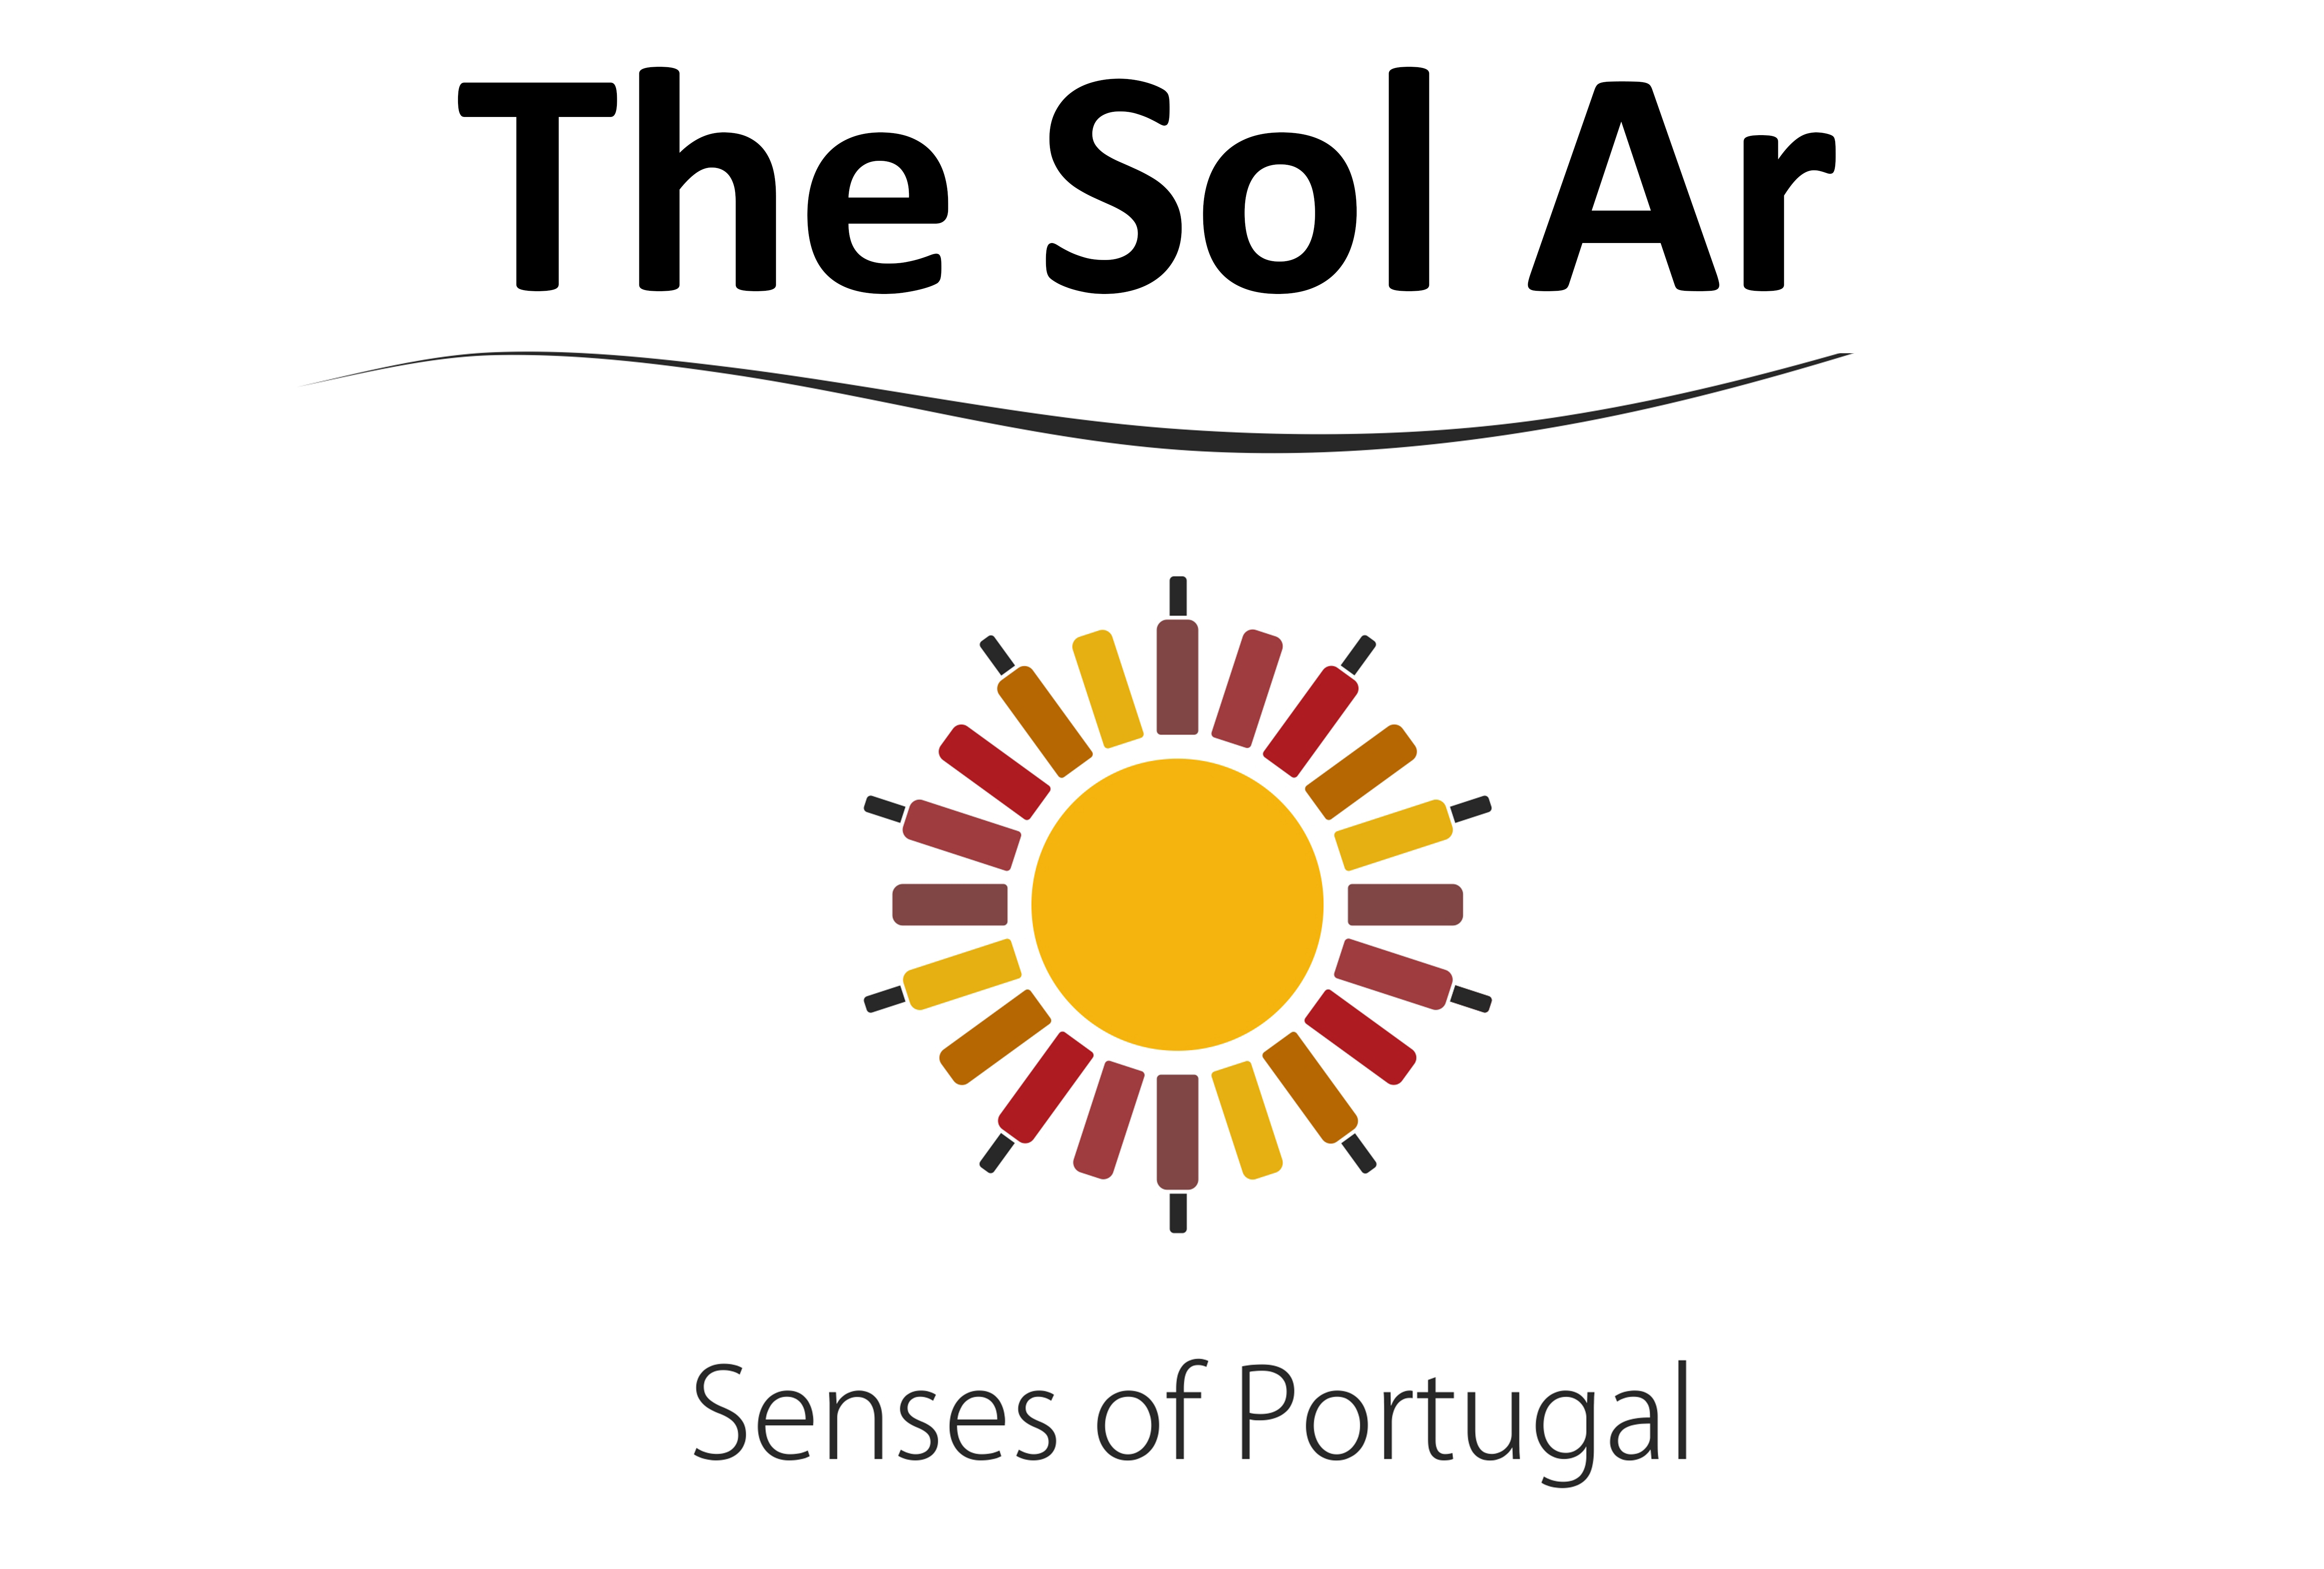 The Sol Ar